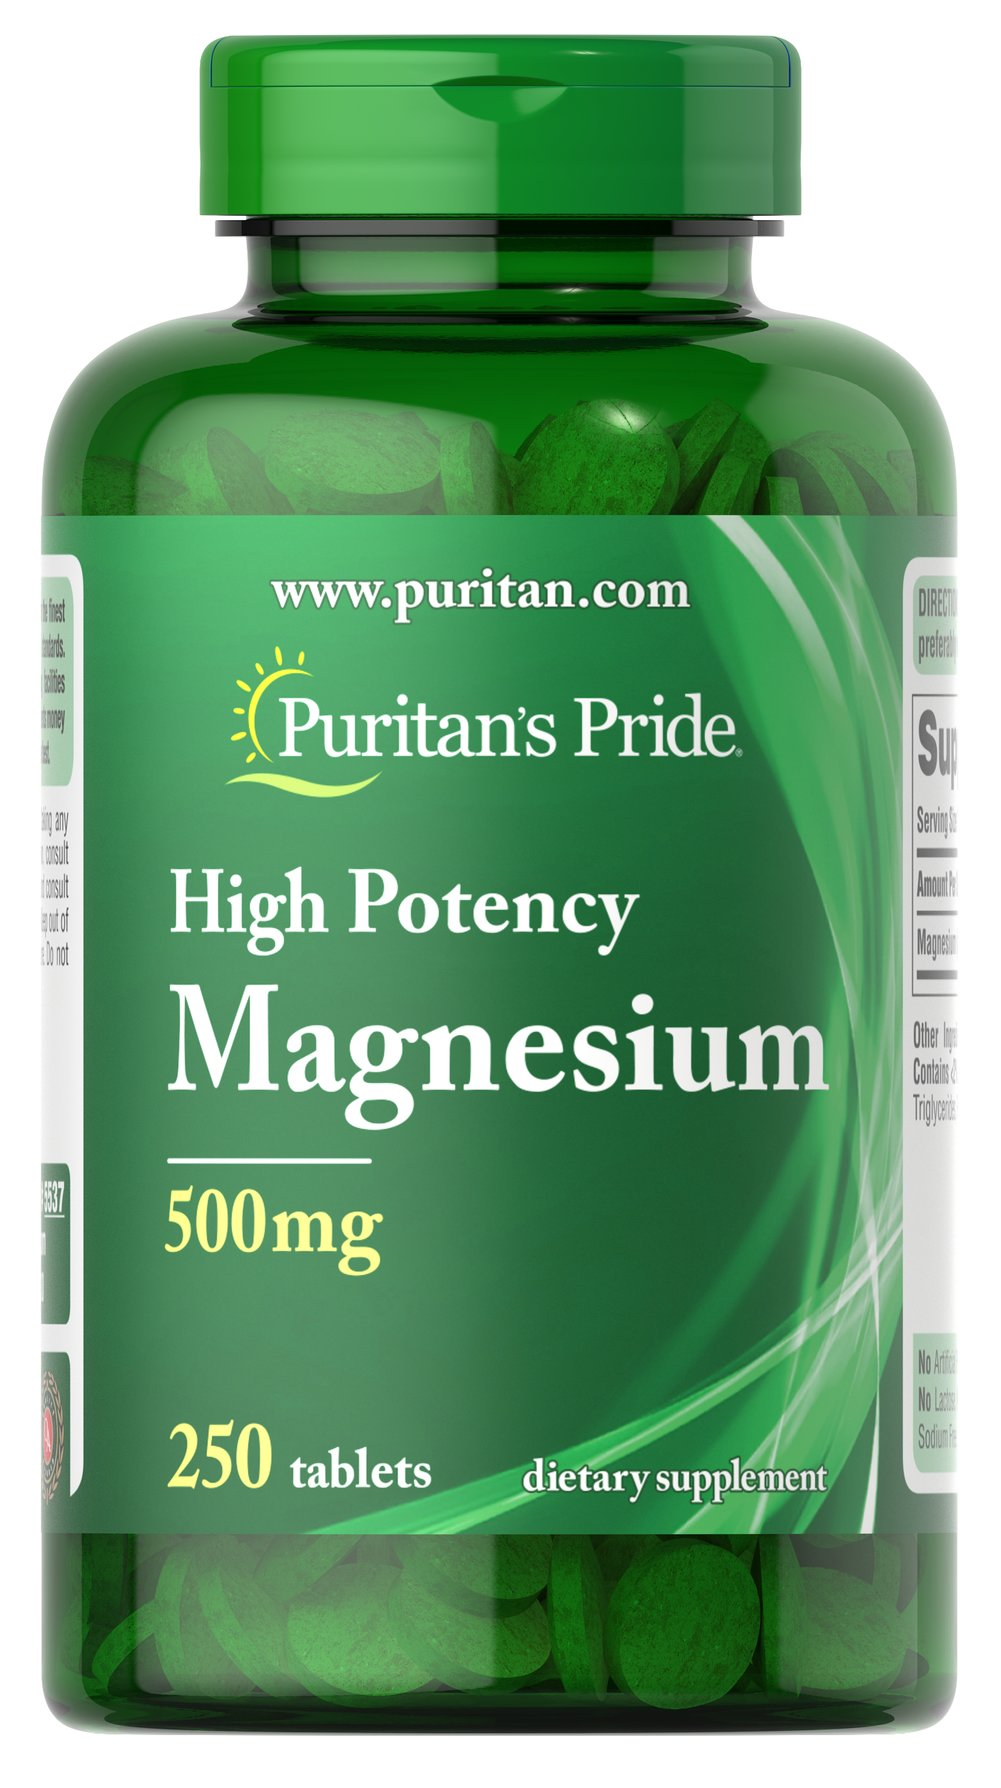 Magnesium 500 mg <p>Magnesium offers another option, besides Calcium, for supporting bone health.** Magnesium plays an essential role in maintaining bone mineralization, and is also involved in muscle contractions and nerve impulses.** Adults can take one caplet daily with a meal.</p> 250 Tablets 500 mg $22.49